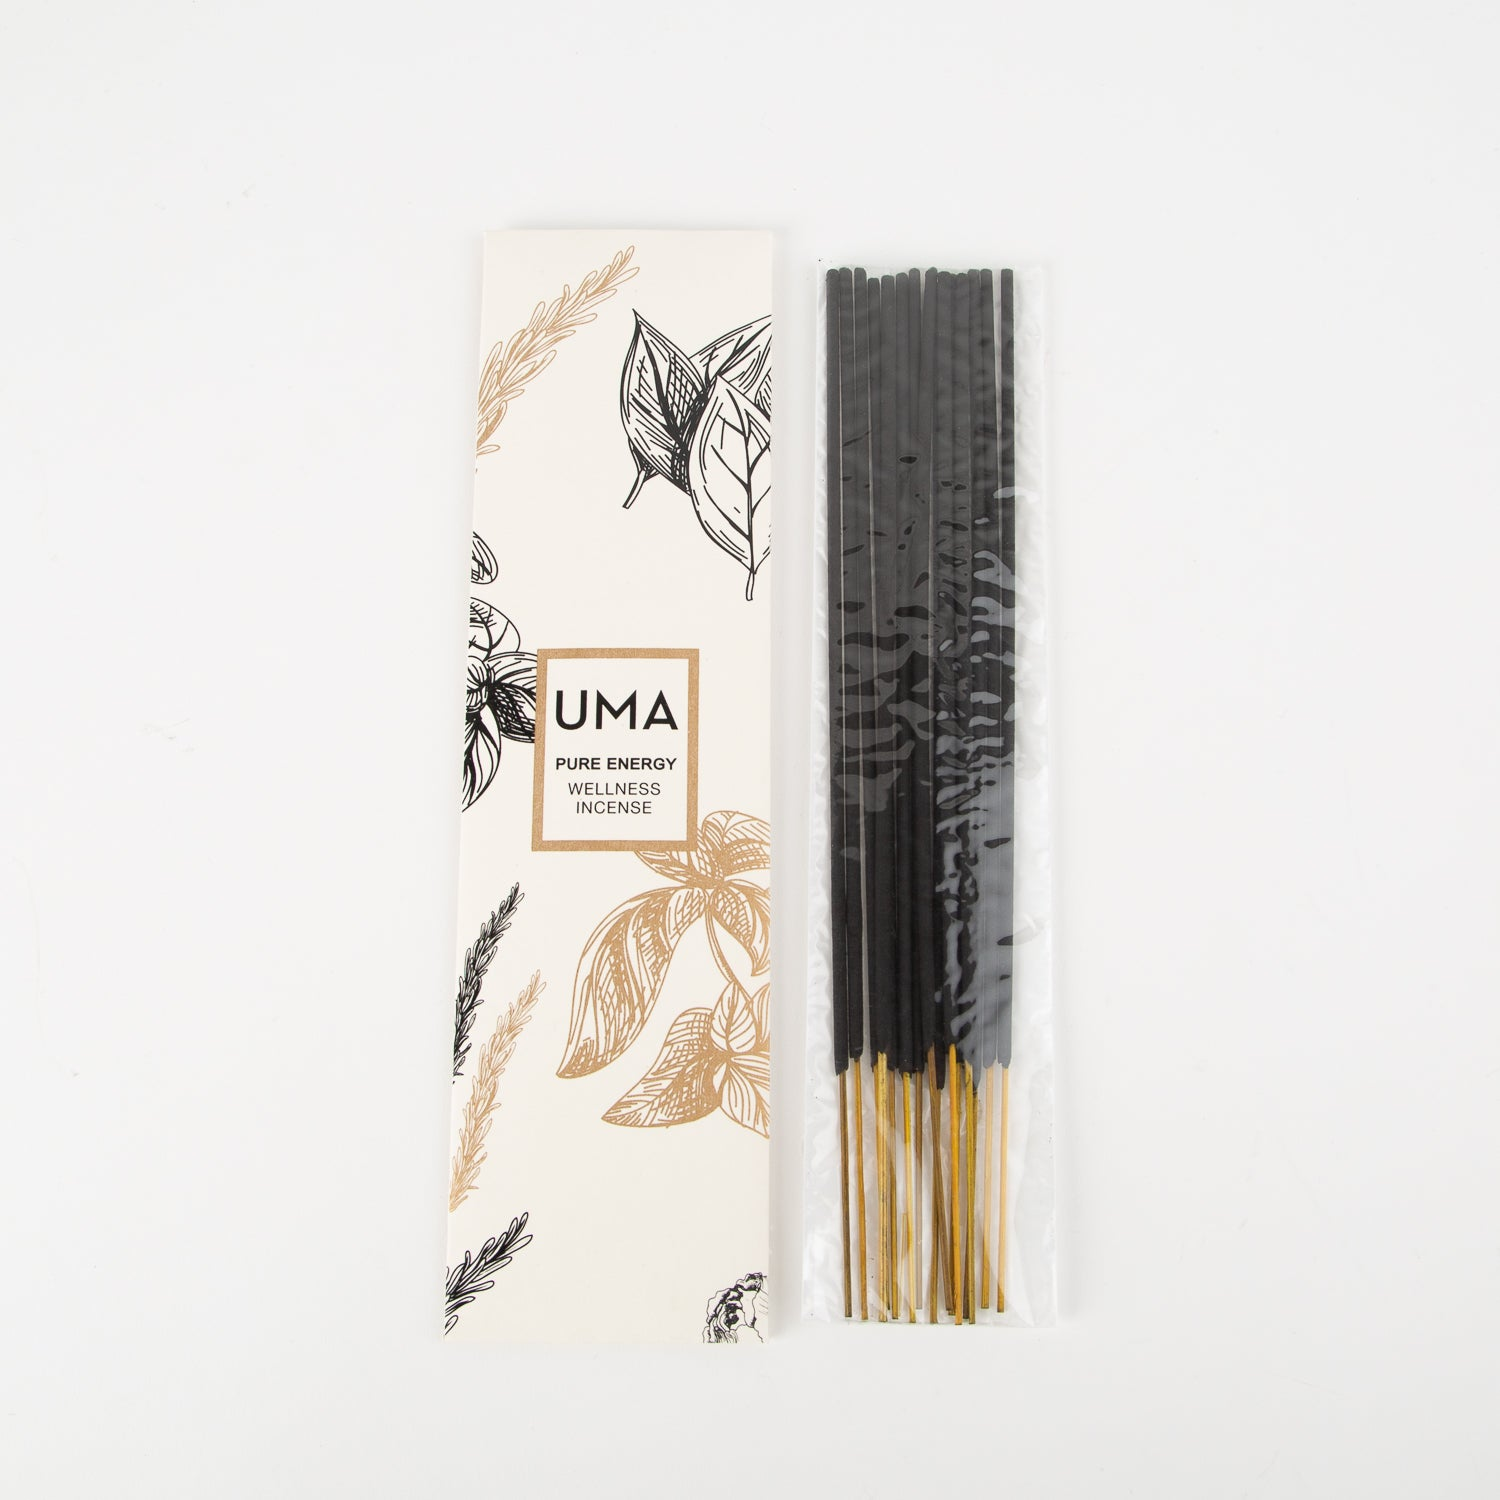 pure energy wellness incense by UMA at Secret Location Concept Store